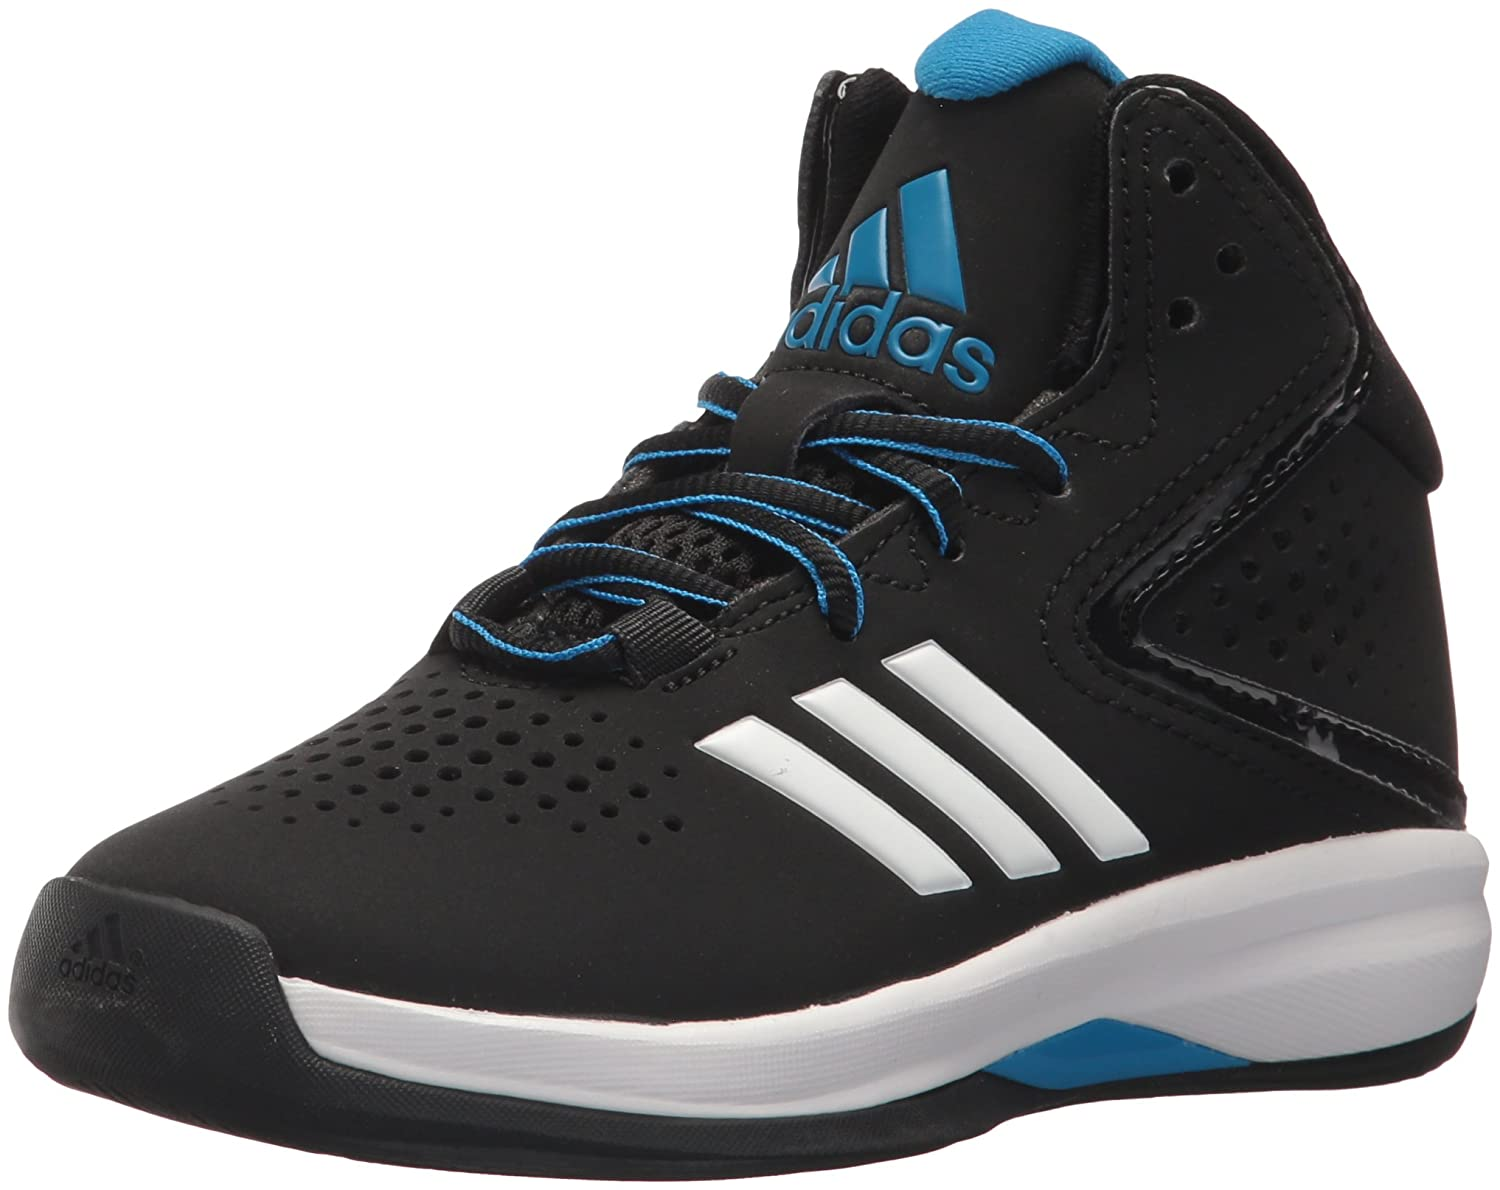 adidas Kids' Cross 'Em up 2016 K Wide Basketball Shoe Cross 'Em Up 2016 K Wide